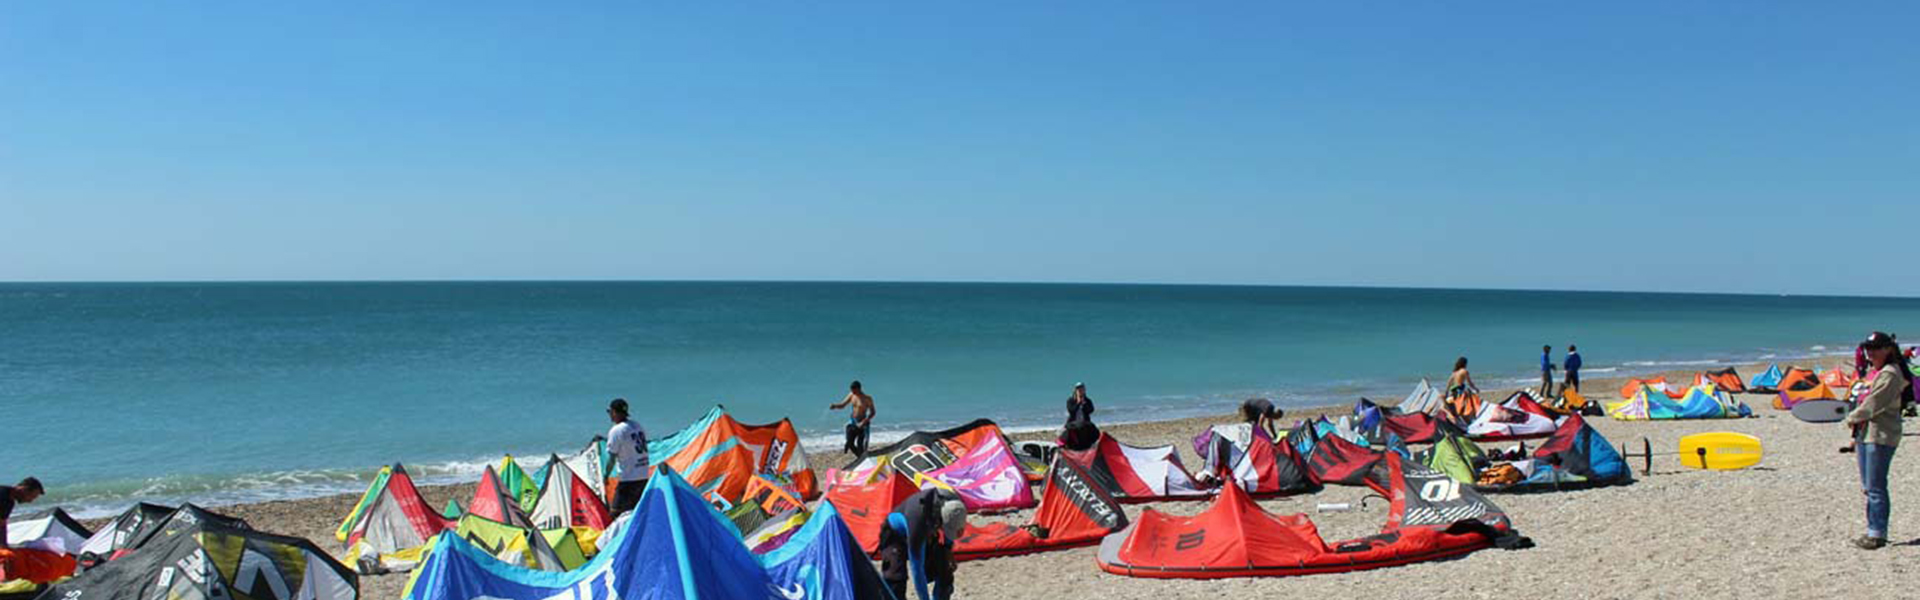 KWM- ASSOCIATION & KITESCHOOL & EVENTS